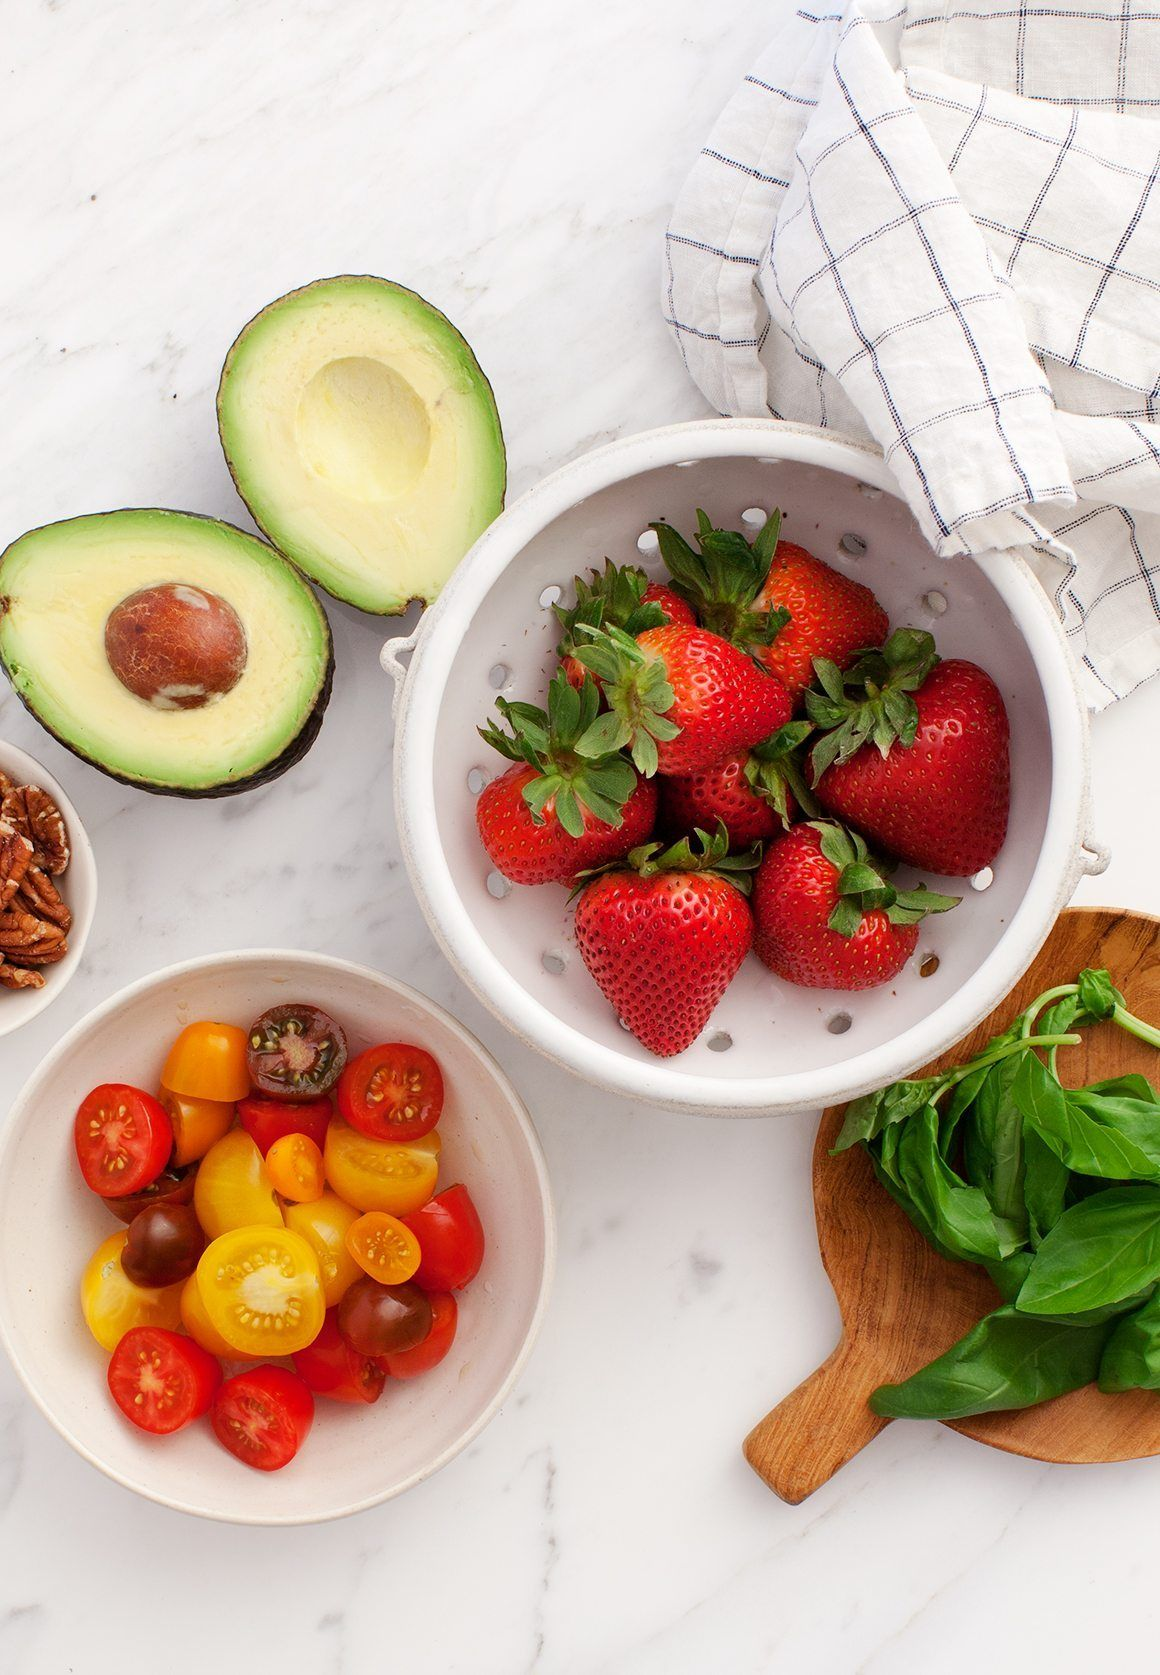 Strawberry Salad with Avocado